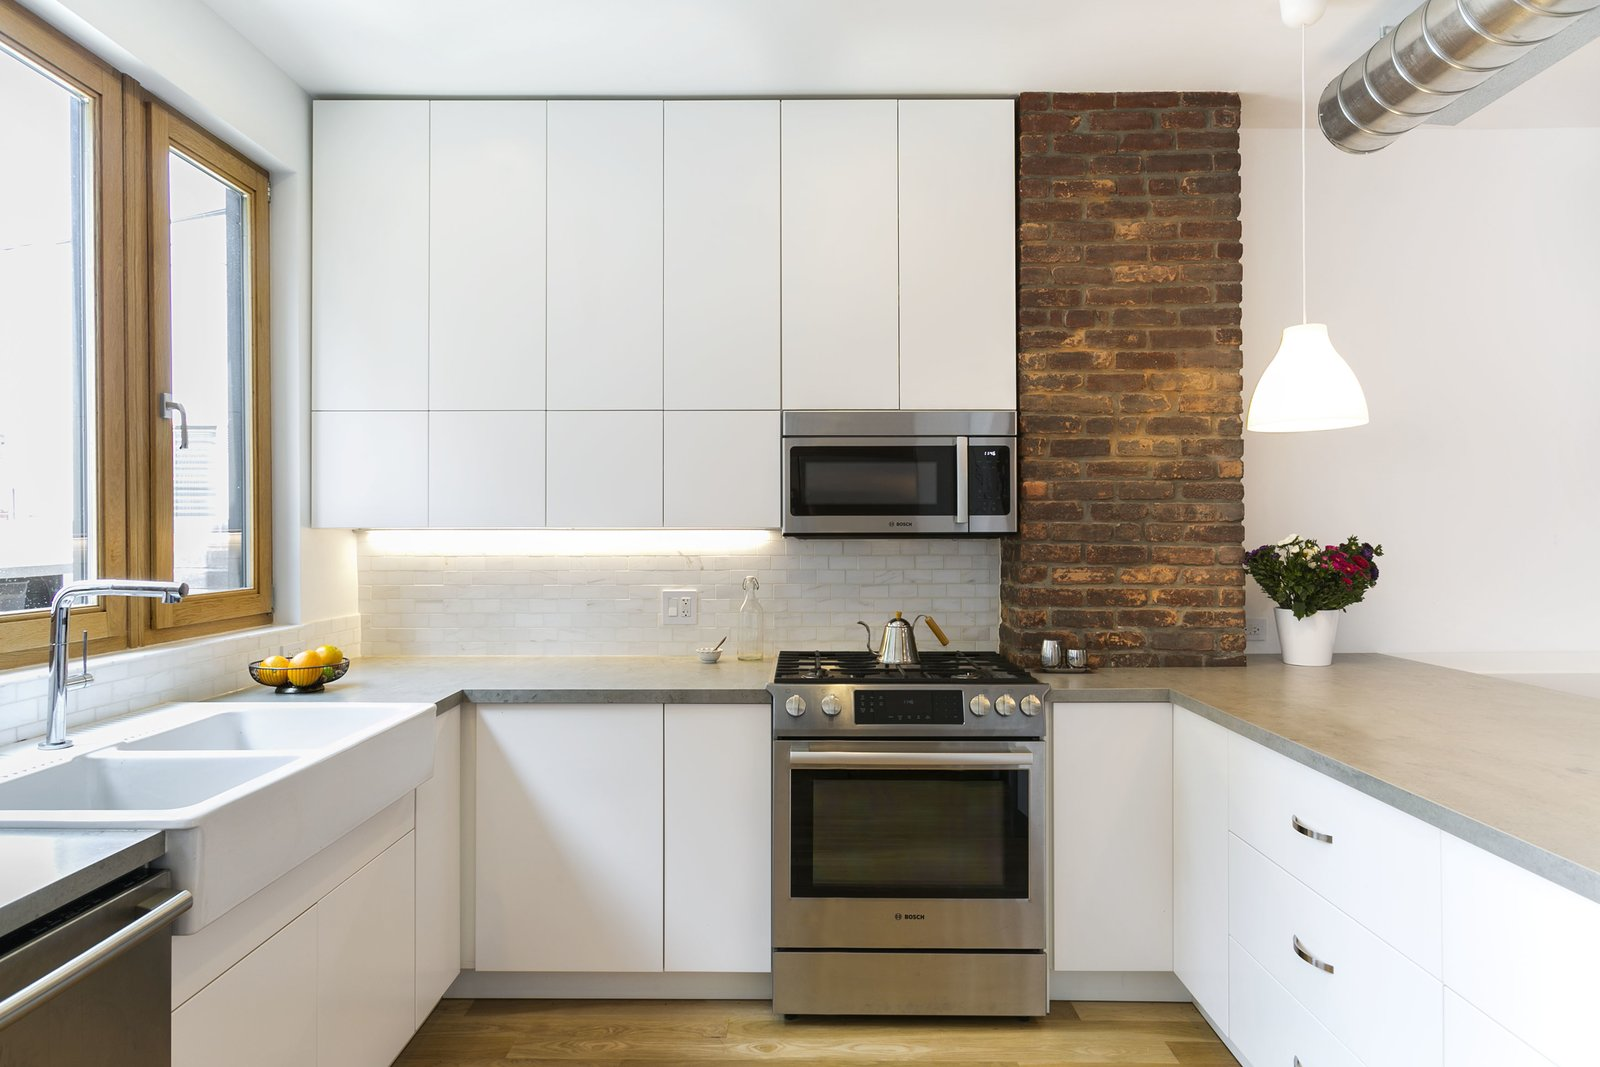 Another view of the kitchen. Tagged: Kitchen, Engineered Quartz Counter, White Cabinet, Ceramic Tile Backsplashe, Pendant Lighting, Light Hardwood Floor, Accent Lighting, Ceiling Lighting, Microwave, Range, and Dishwasher. Sunset Park Row House by Ula Bochinska